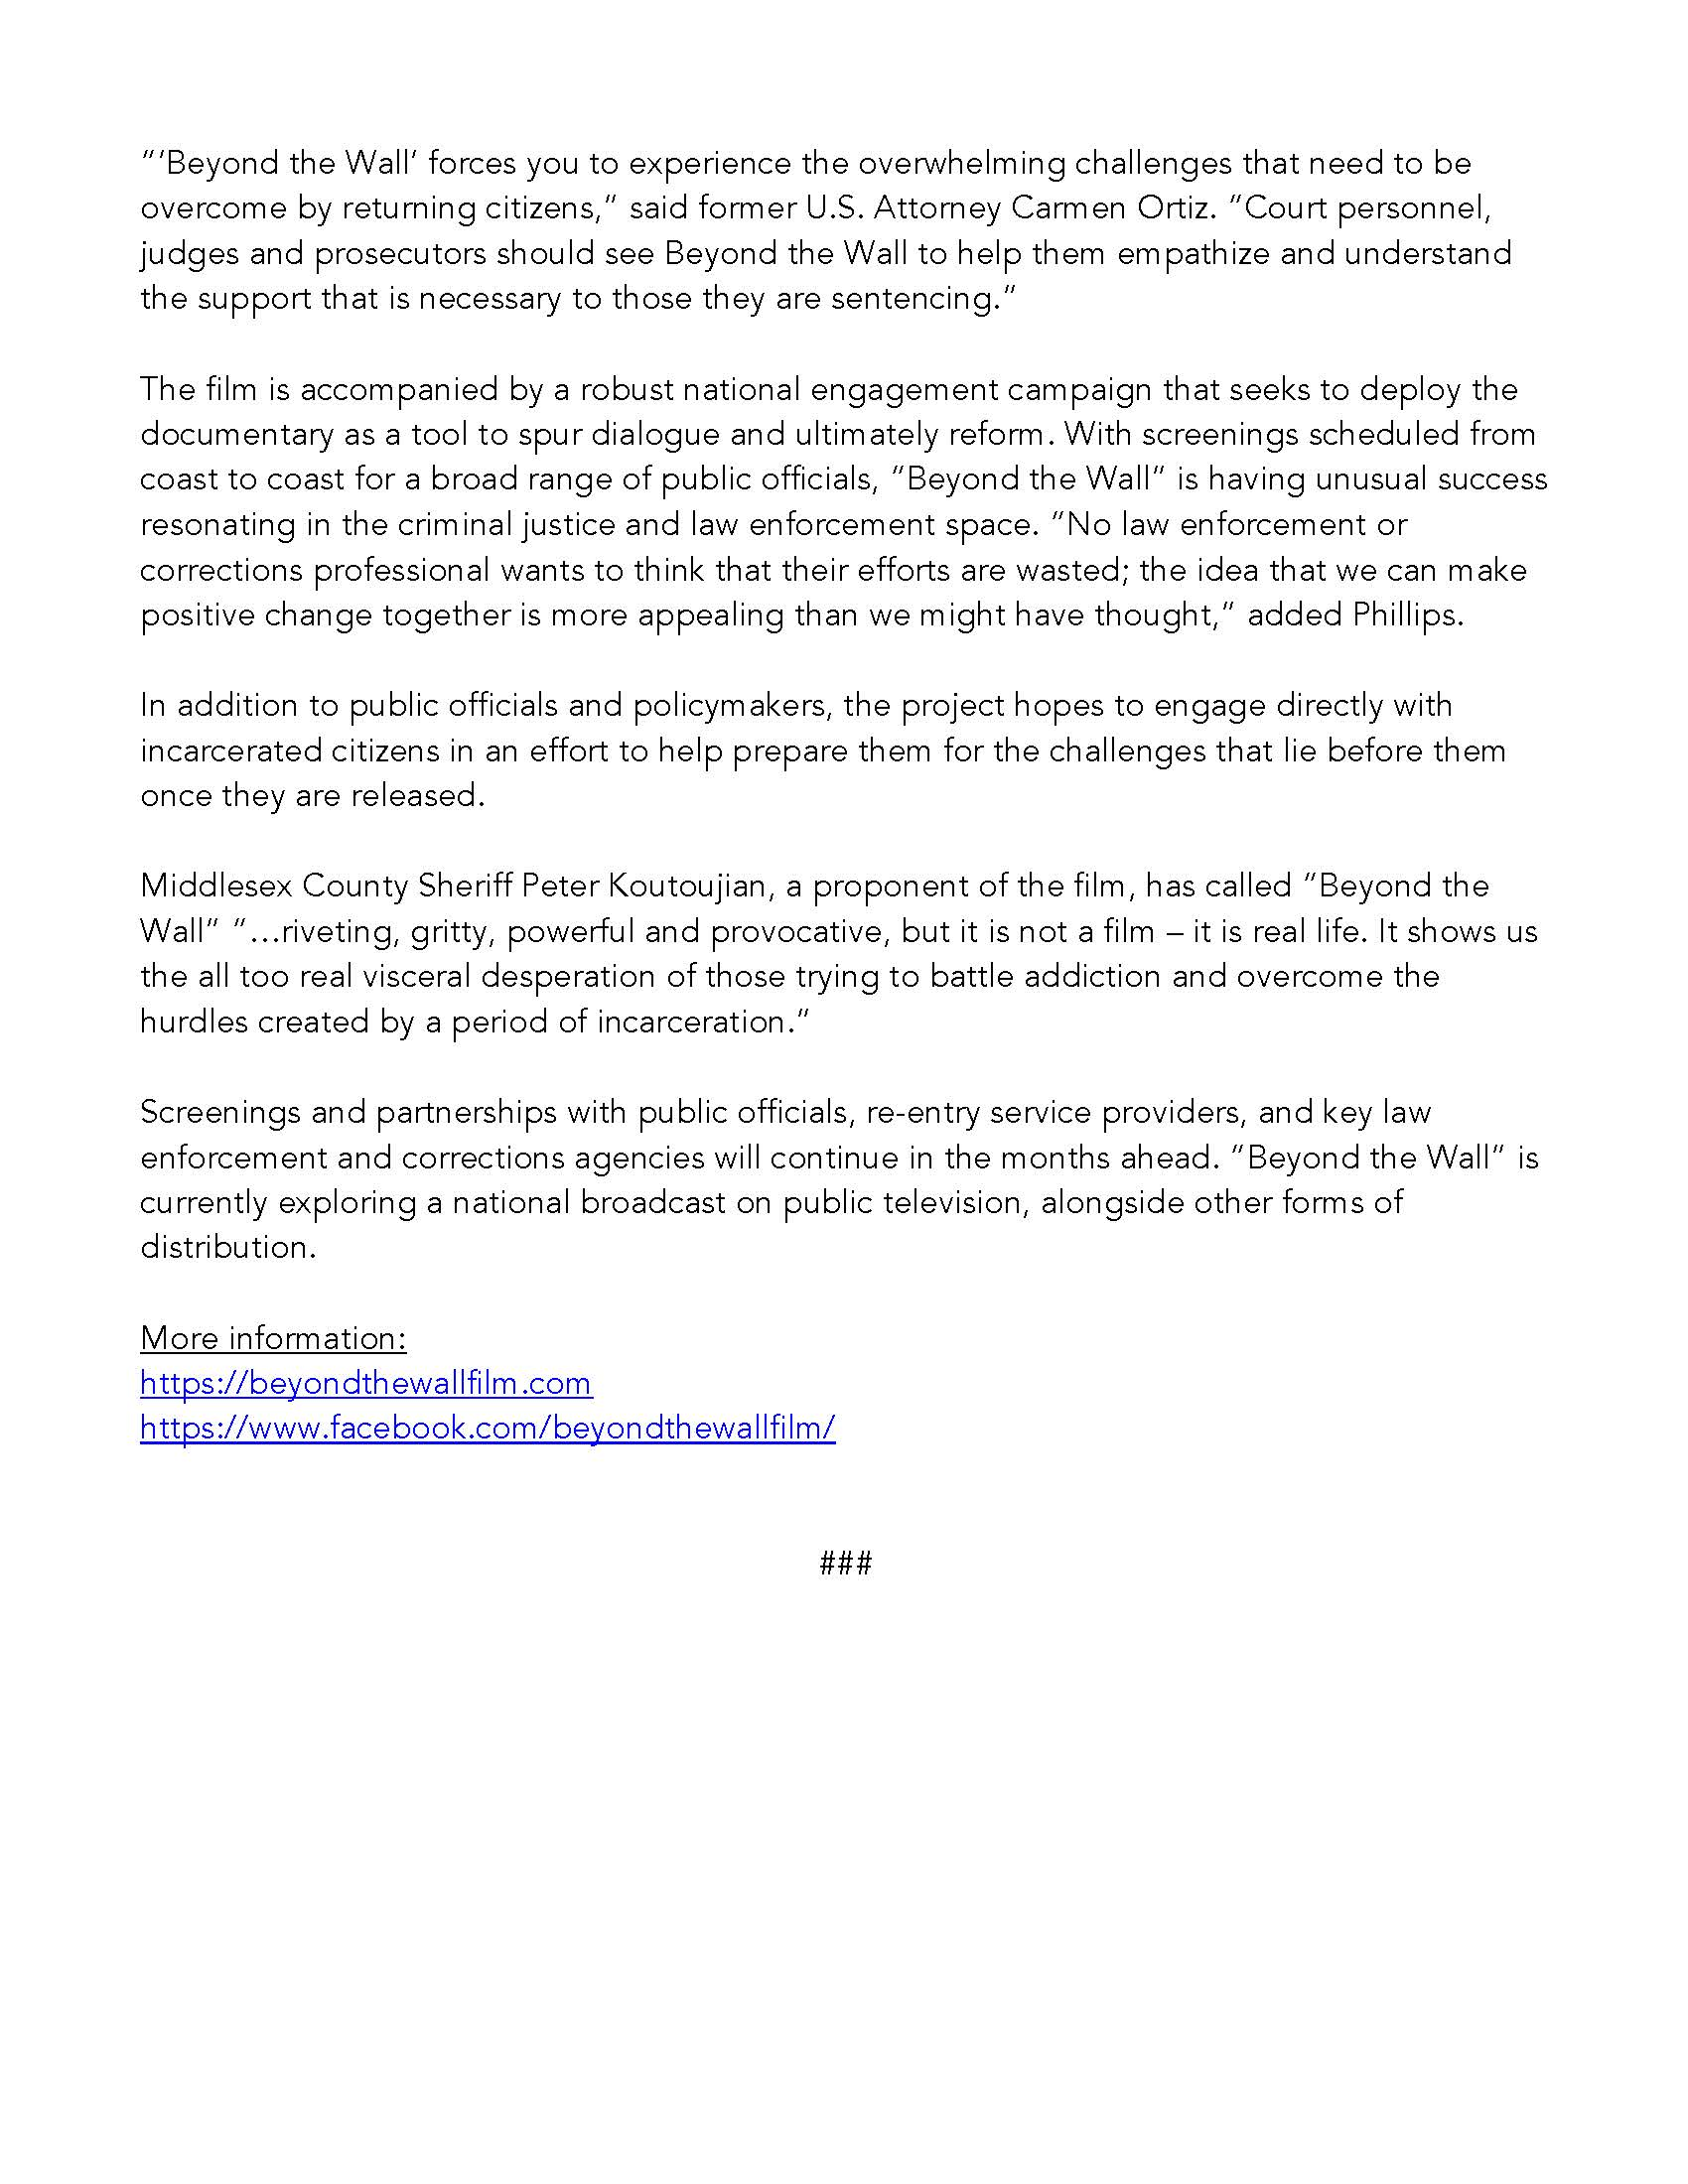 Beyond The Wall Press Release